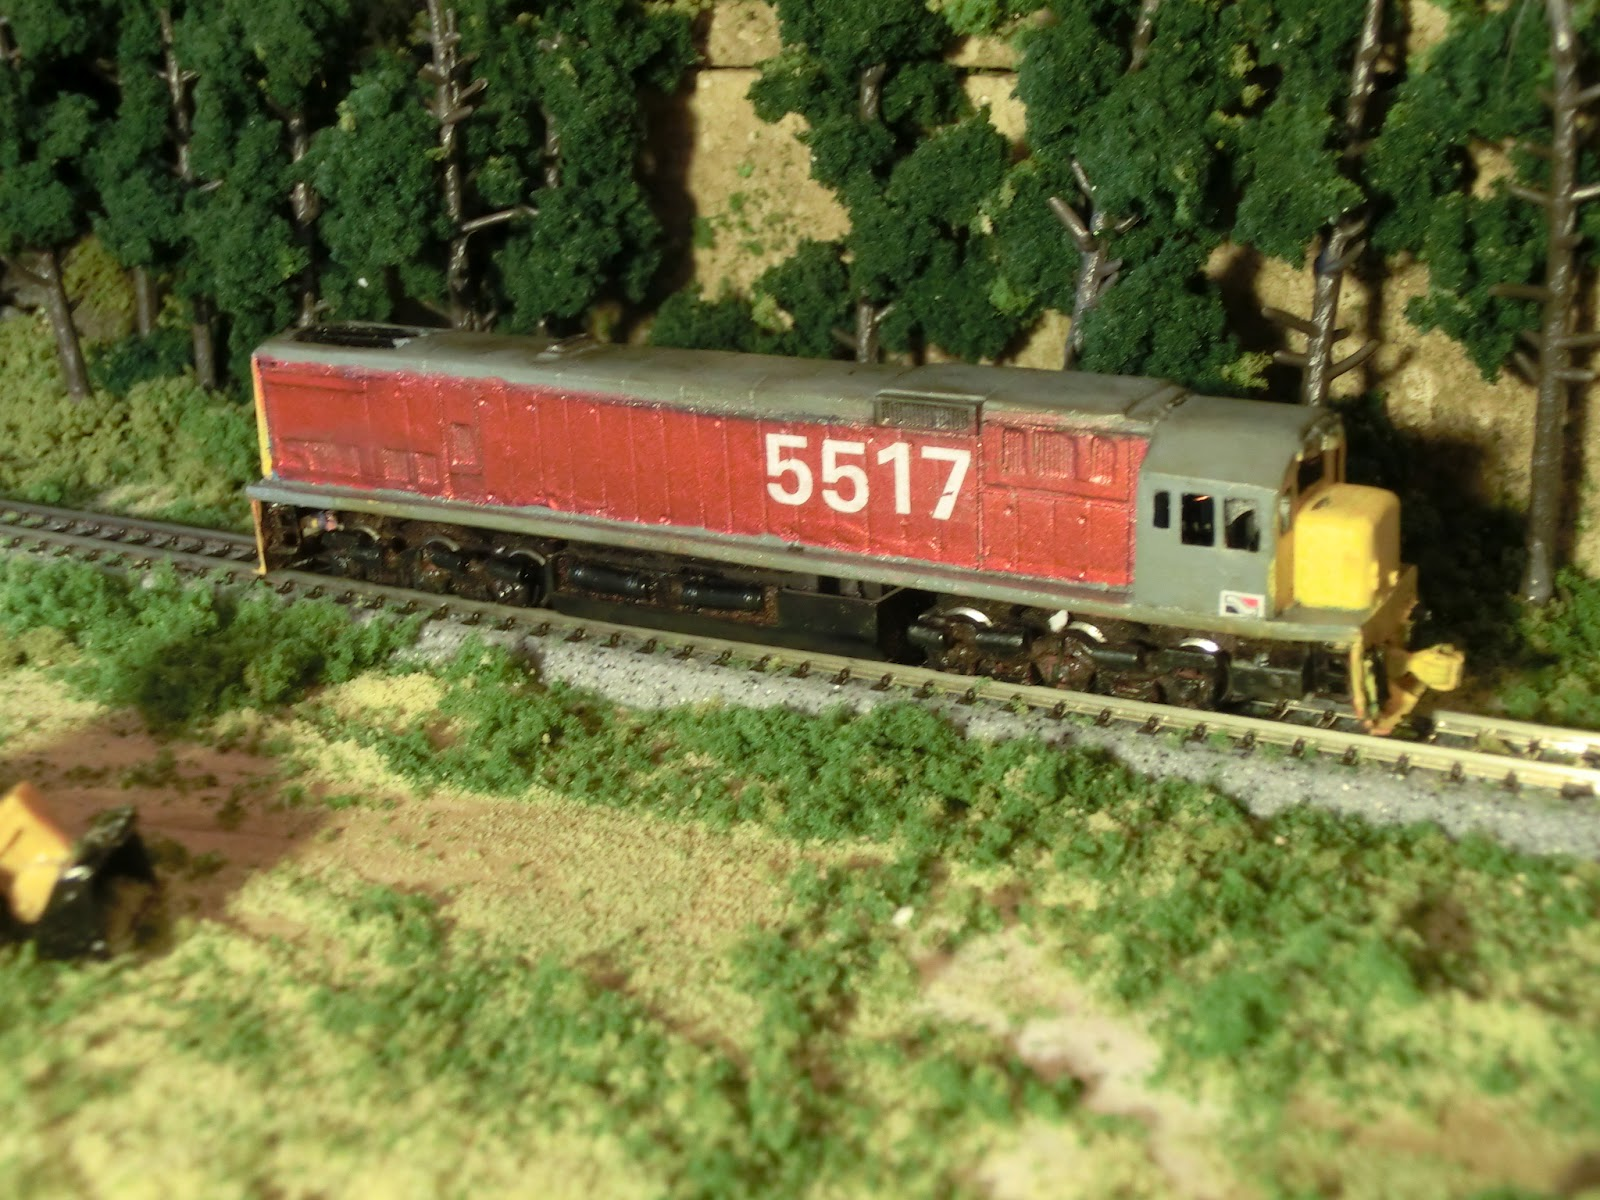 Nzr model trains for sale